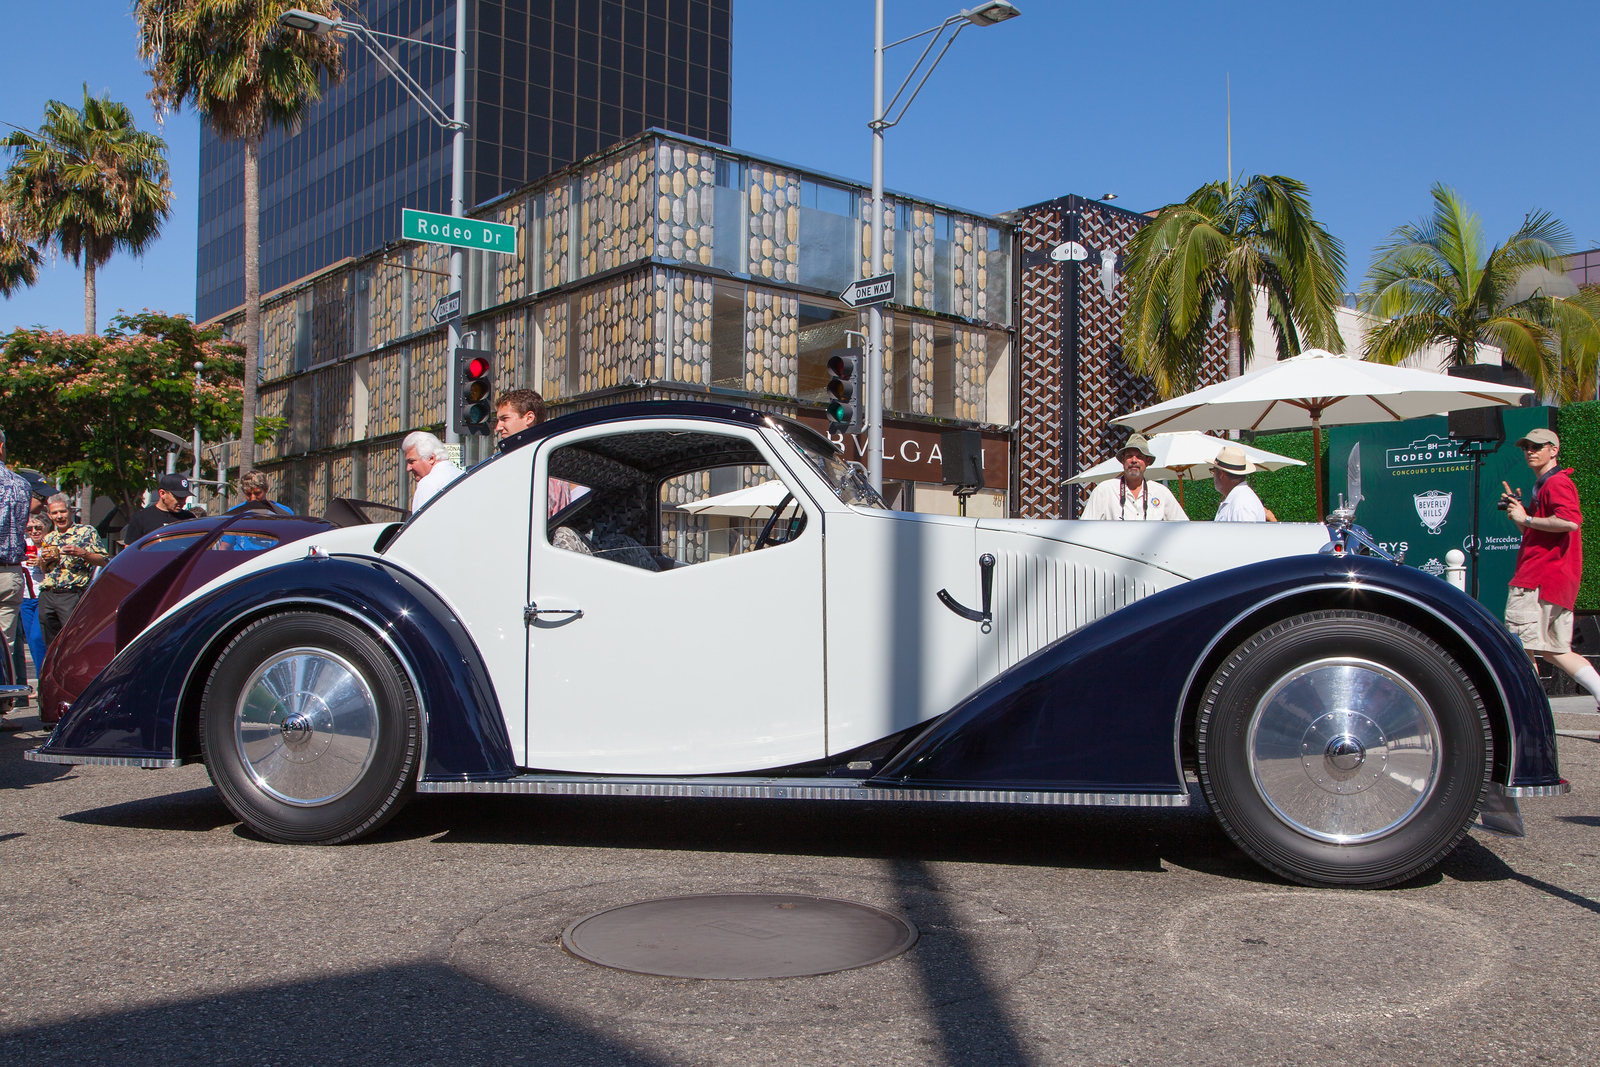 1936 Voisin Aerodyne, owned by the Mullin Automotive Museum